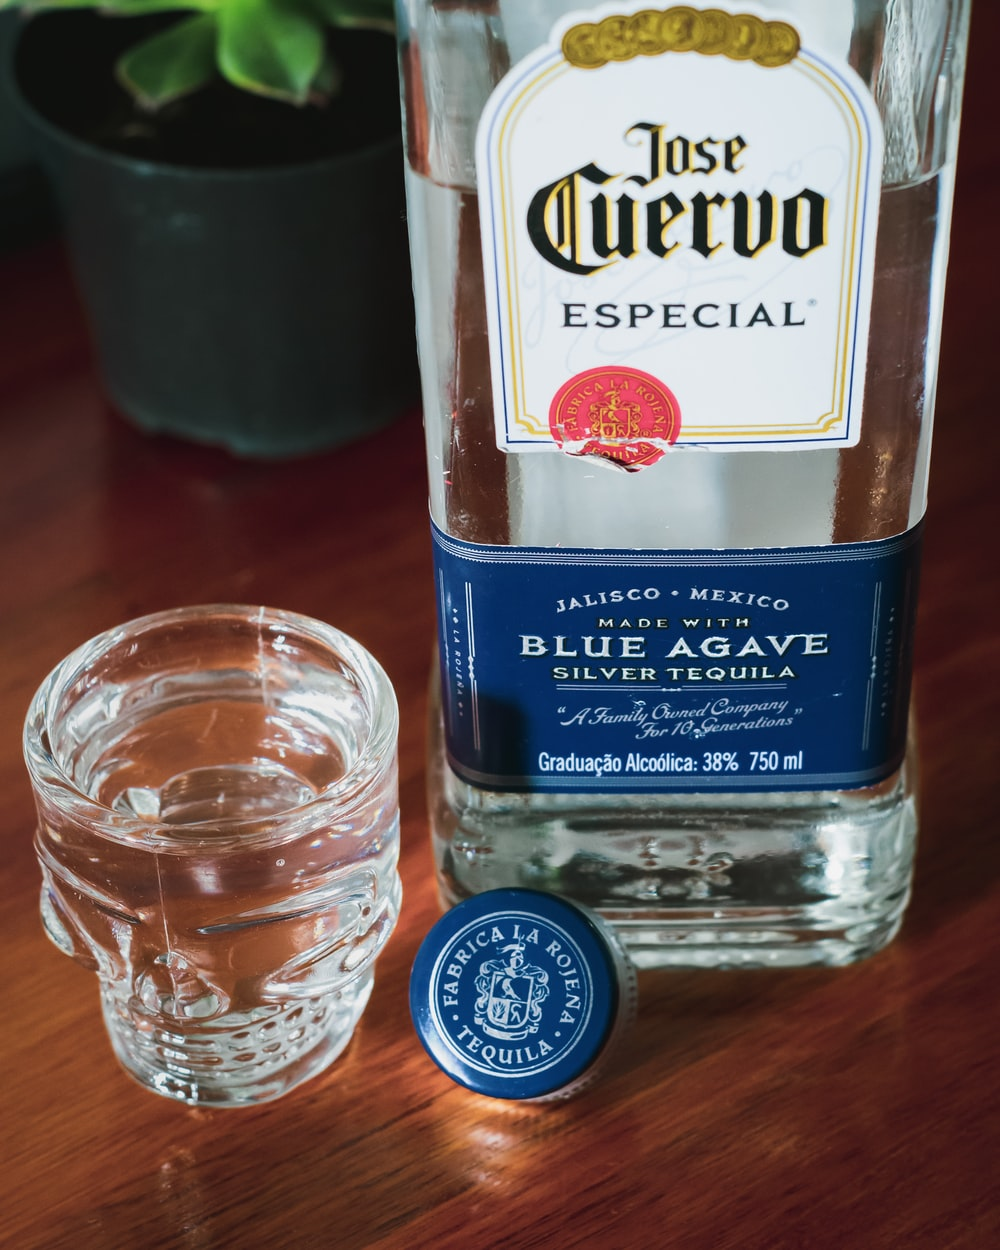 Jose Cuervo Especial Blue Agave bottle